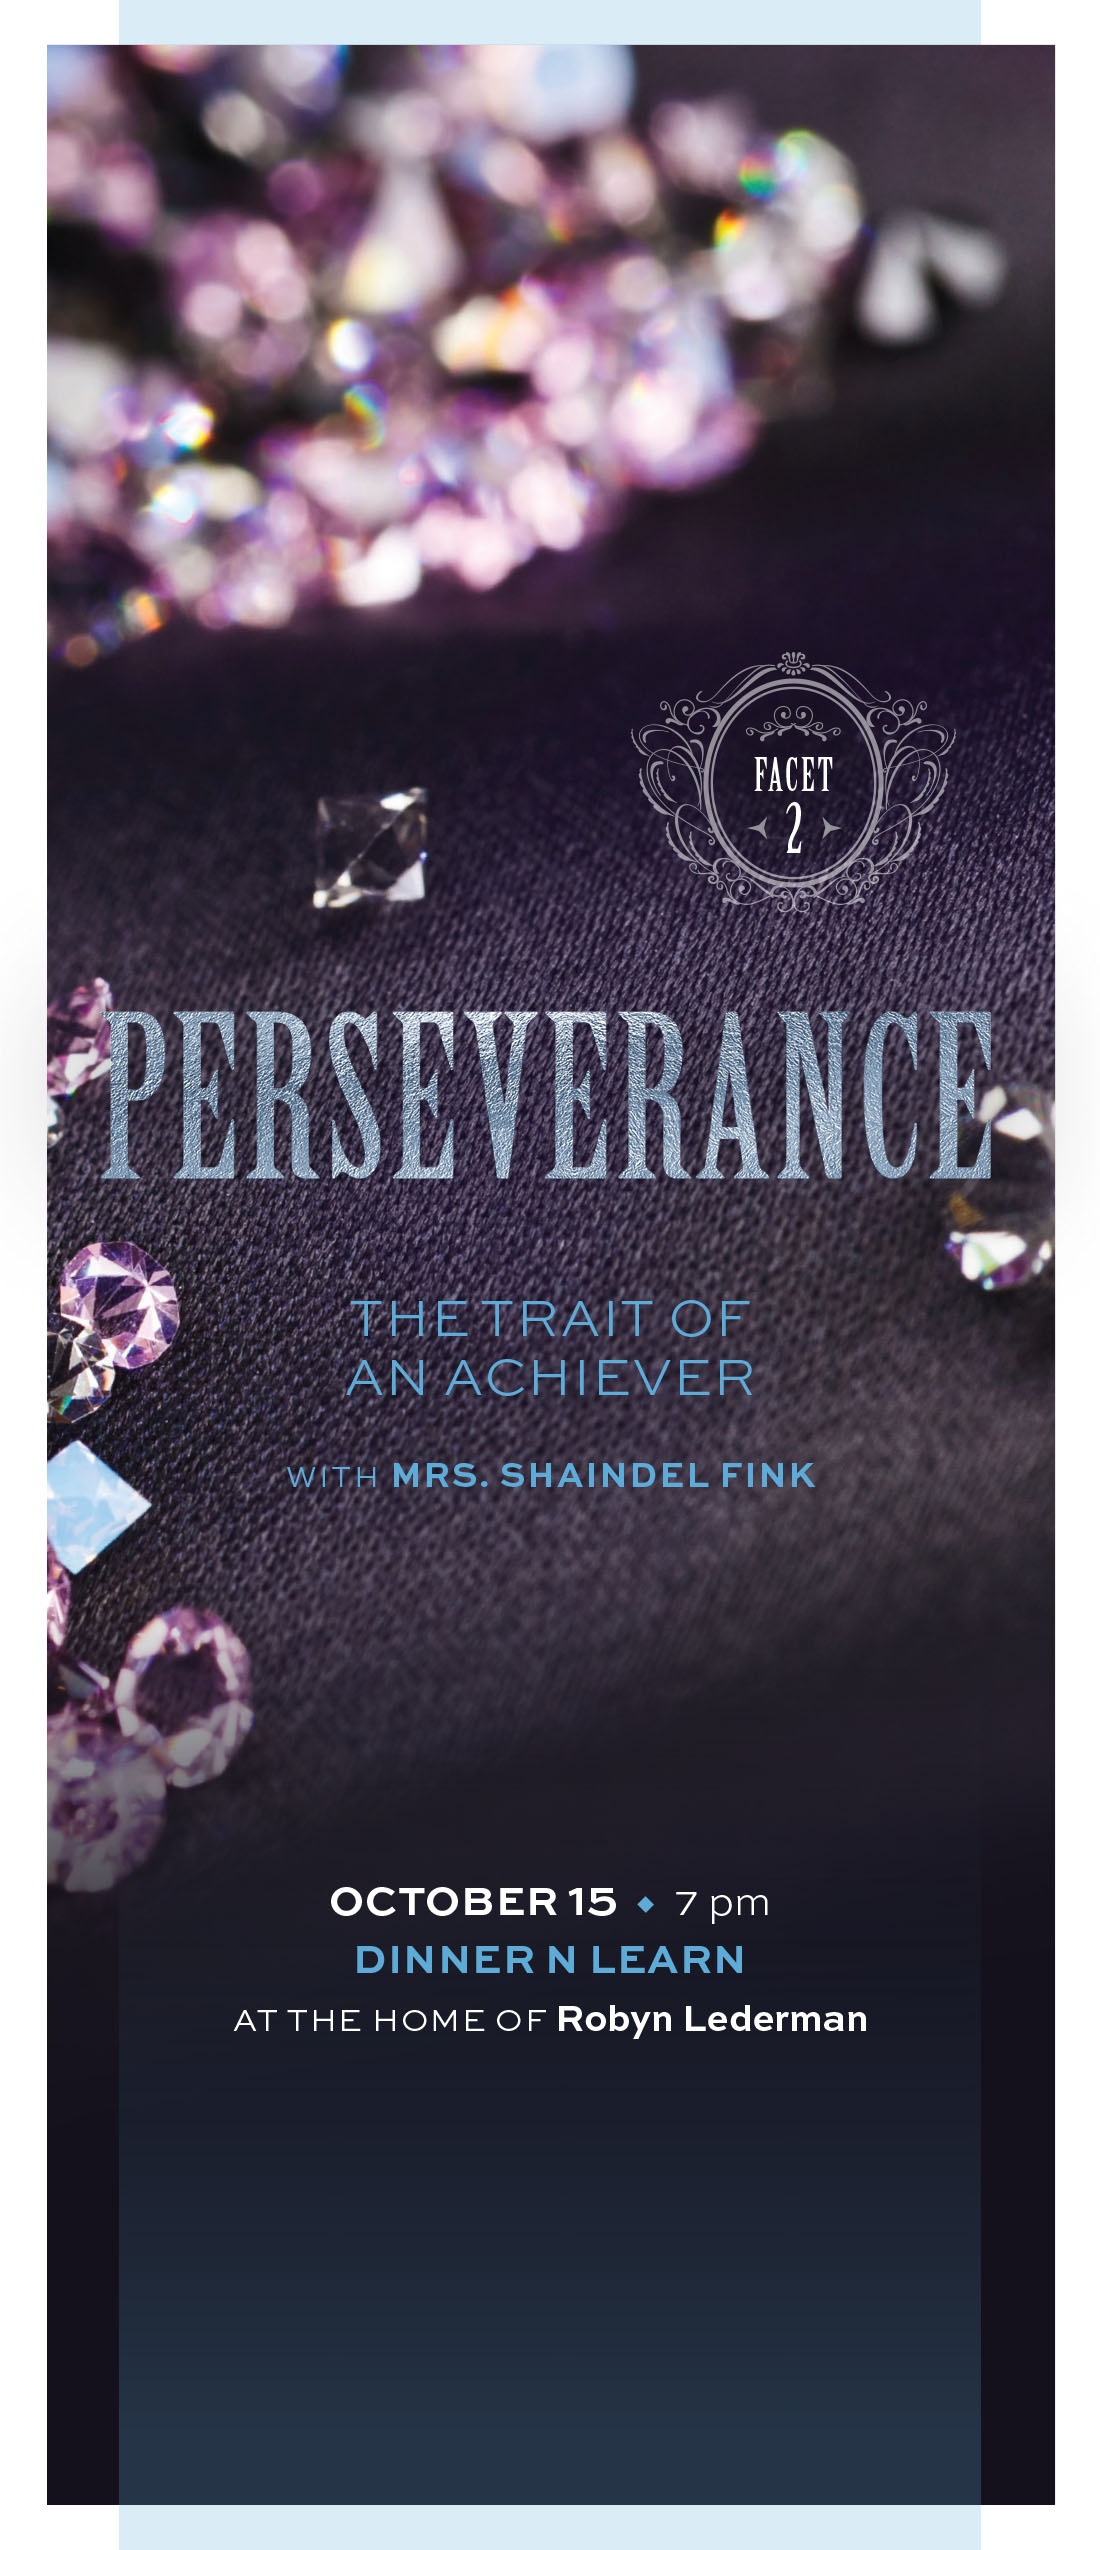 Facets - Perseverance: The Trait of an Achiever Dinner 'n Learn